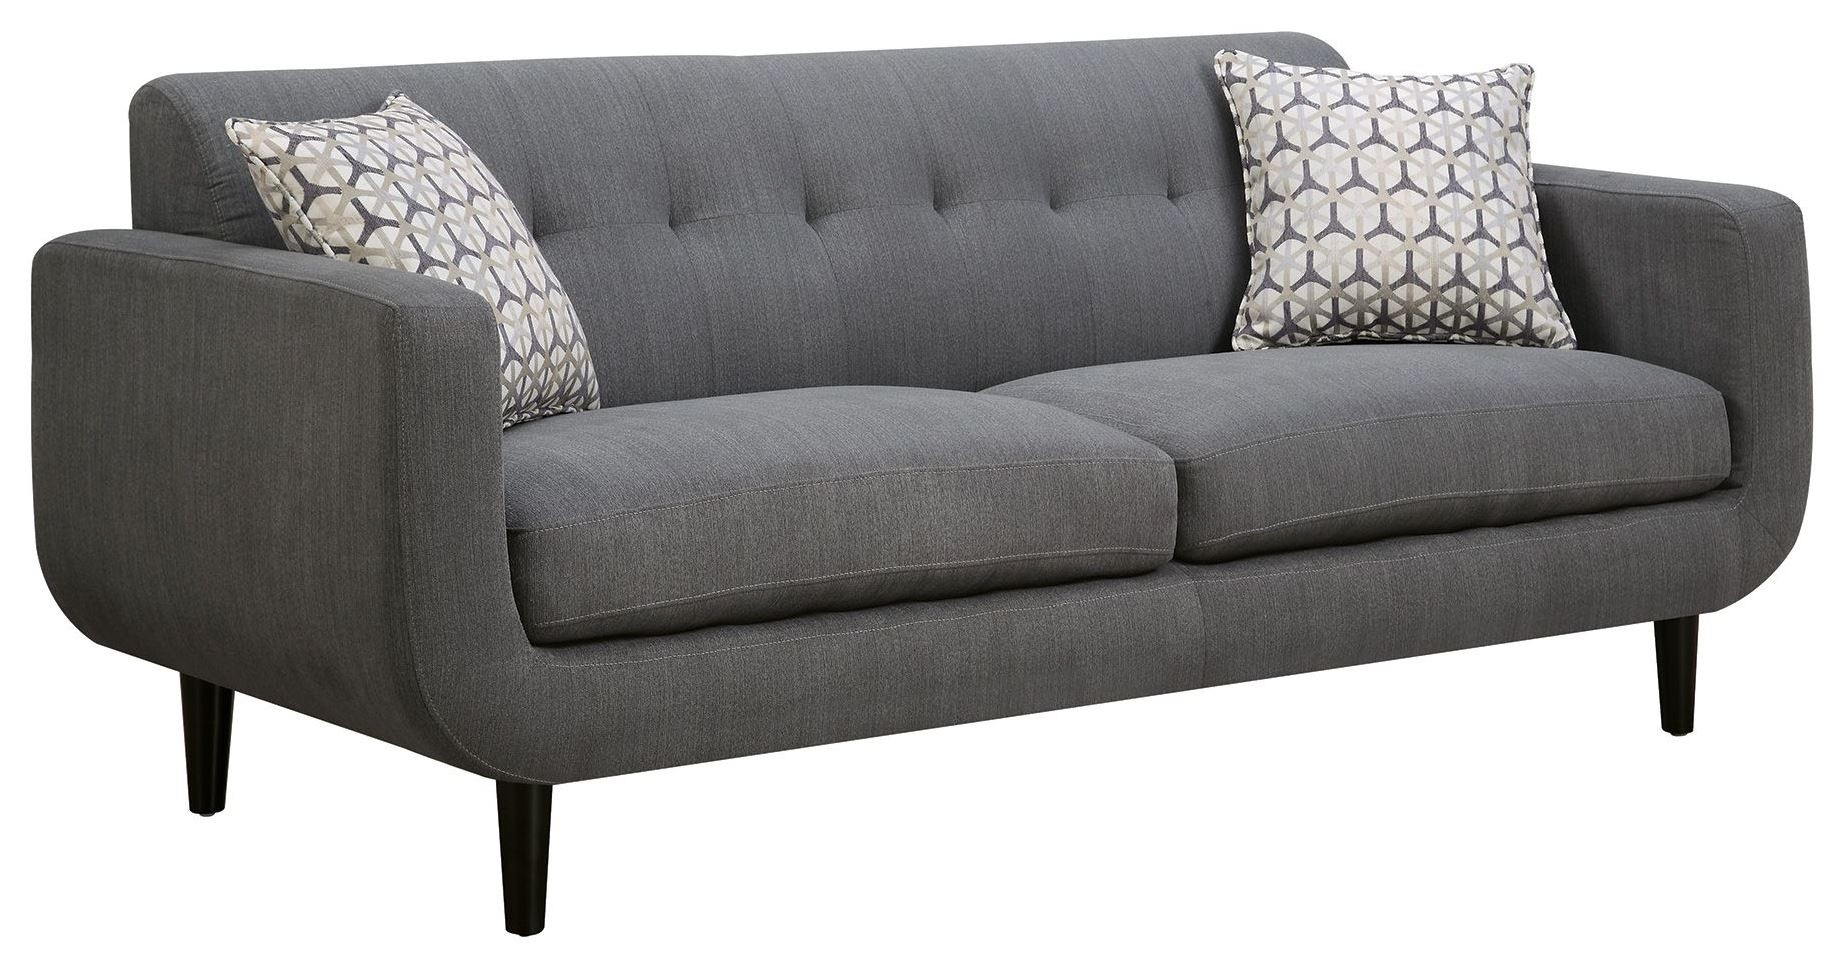 grey sofas aspen sectional leather sofa with ottoman stansall from coaster 505201 coleman furniture